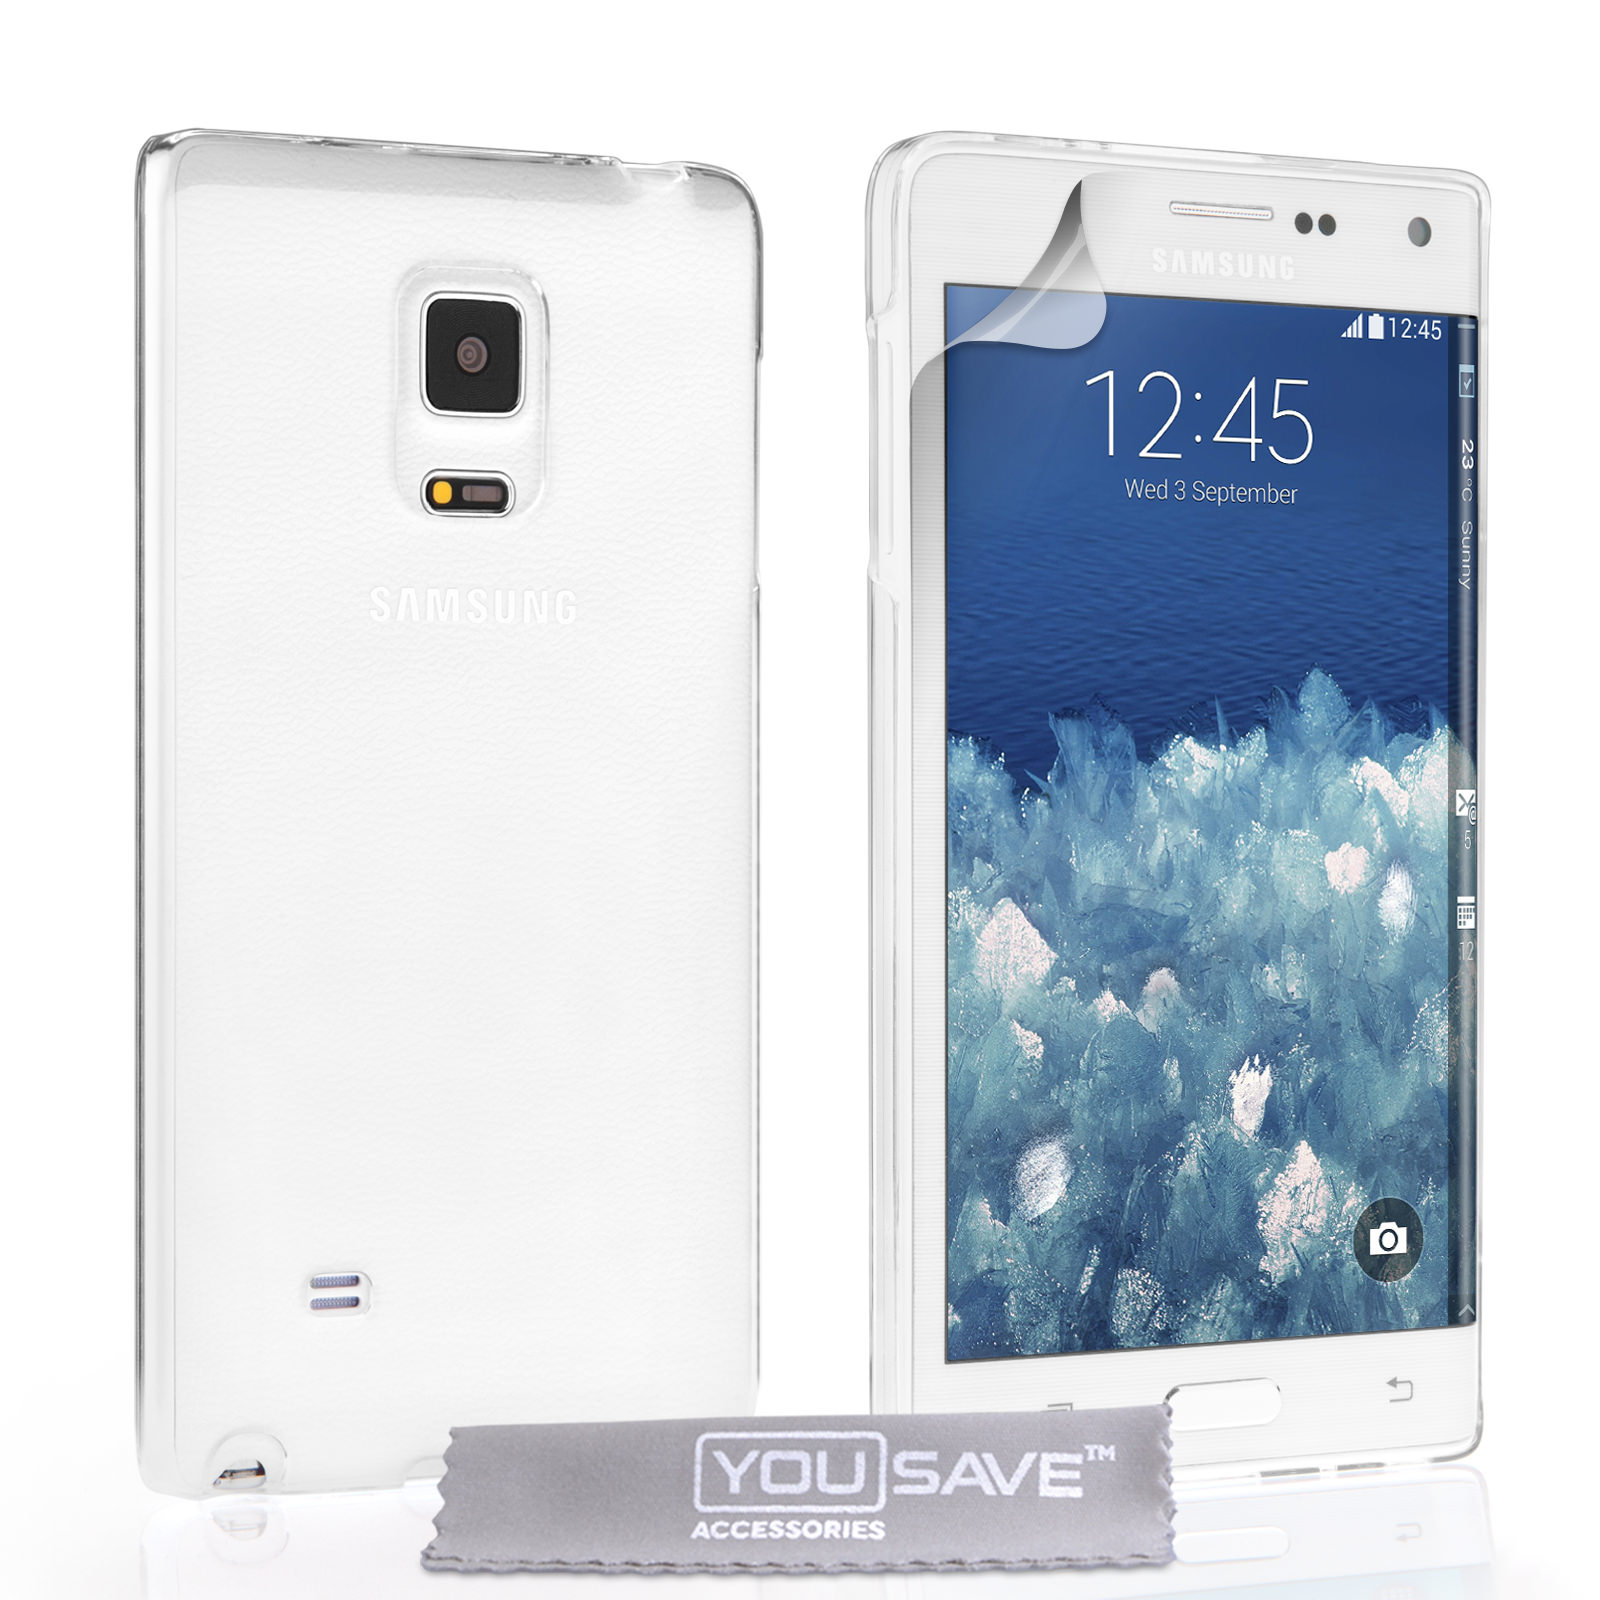 YouSave Accessories Samsung Galaxy Note Edge Hard Case - Crystal Clear